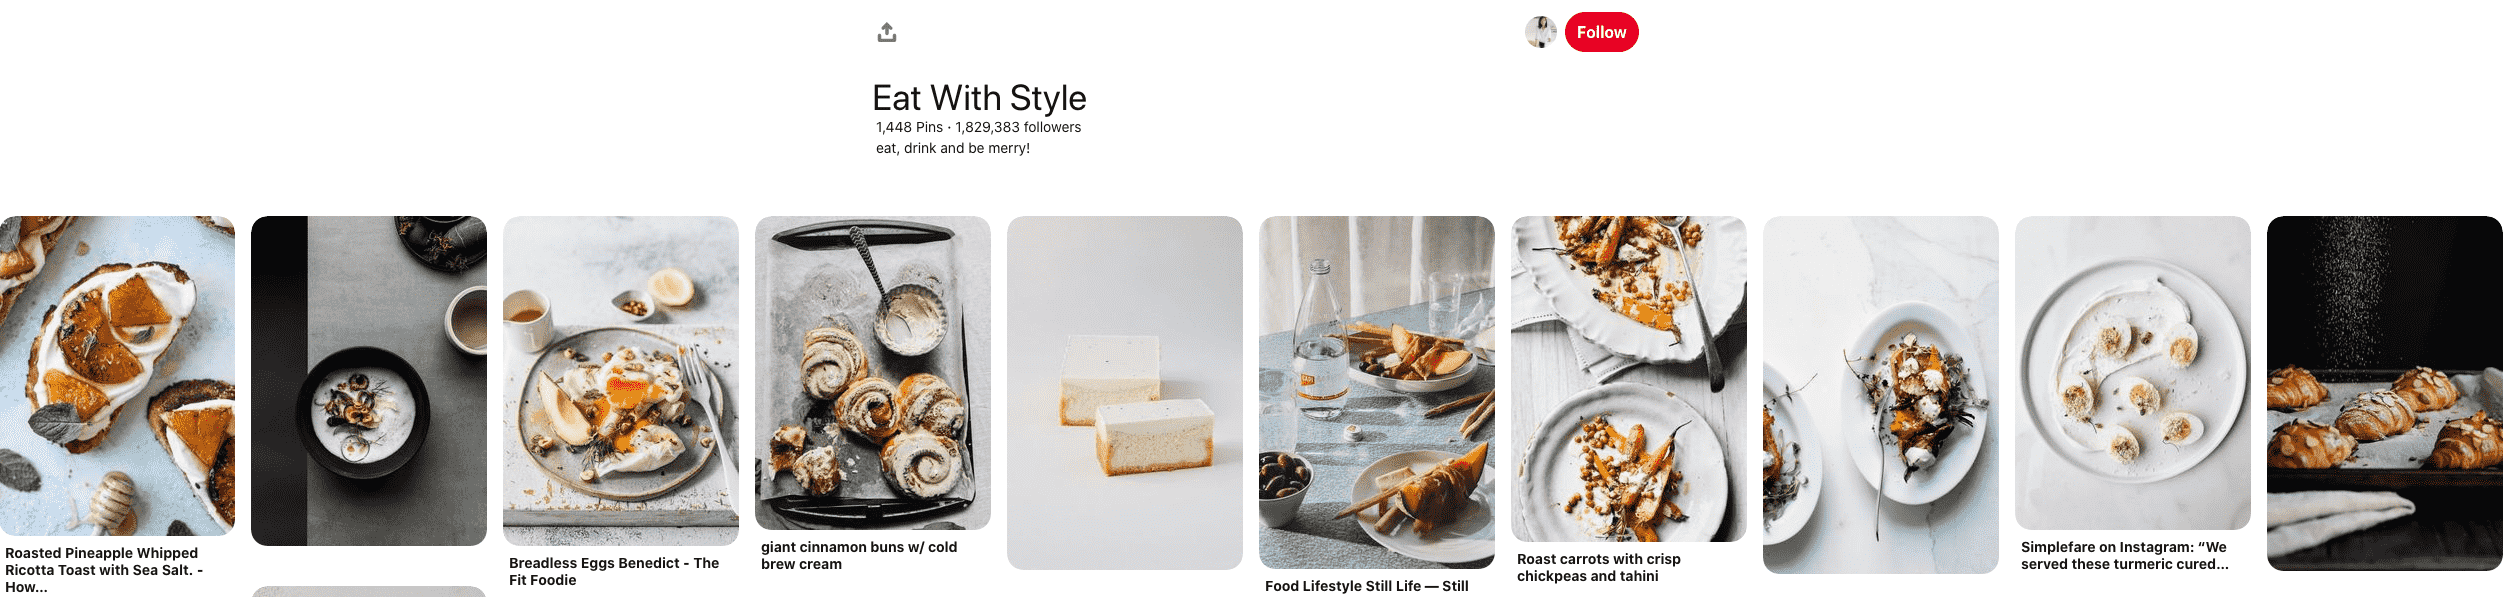 eat with style board